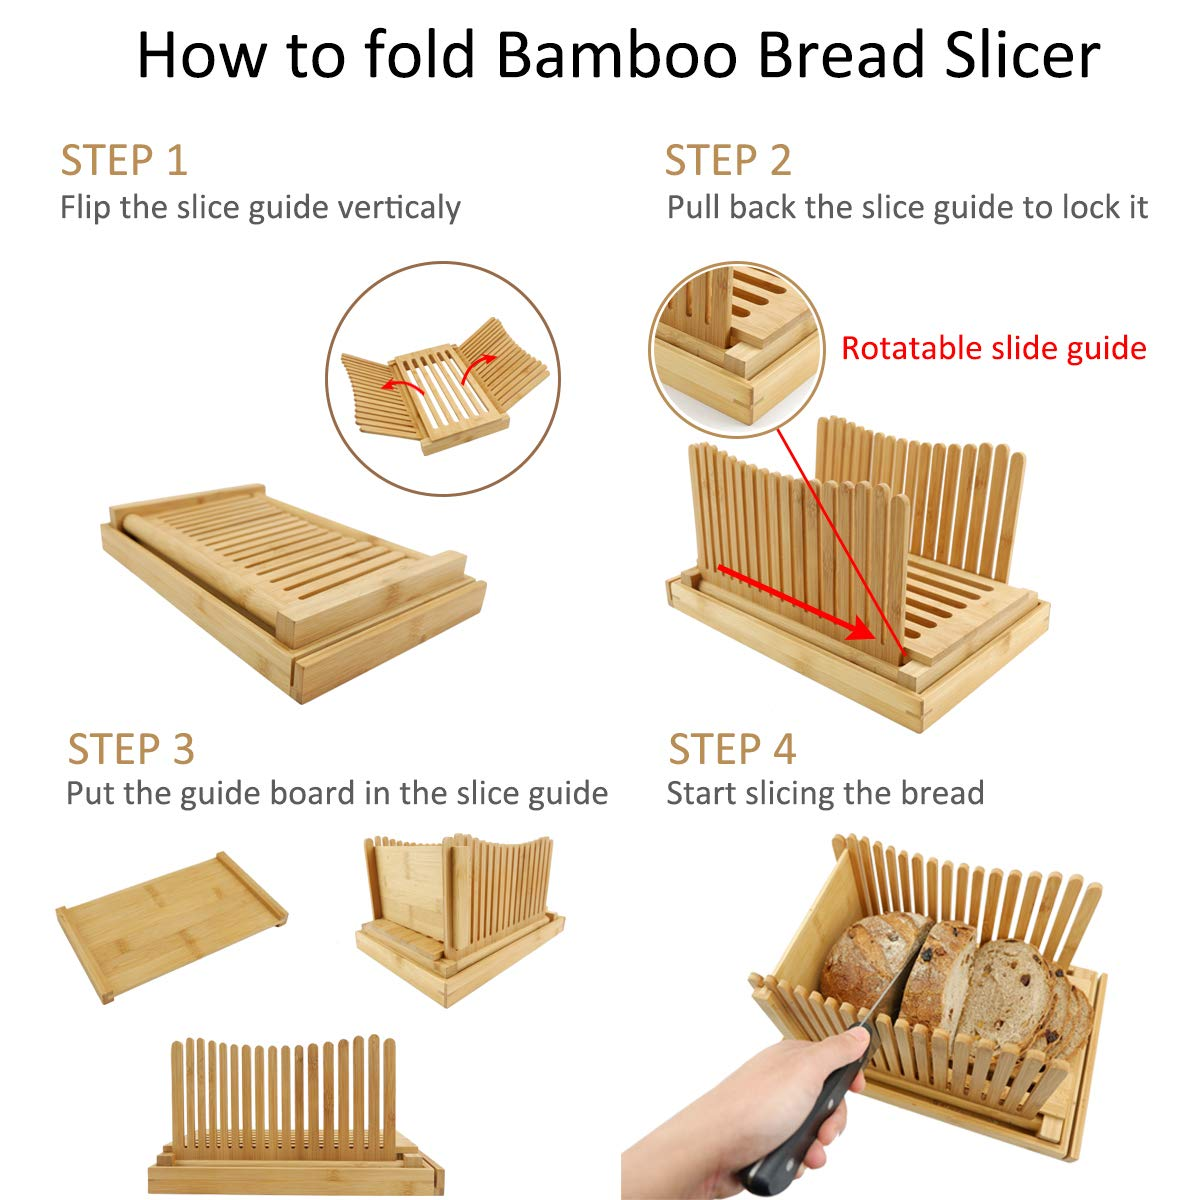 MAGIGO Nature Bamboo Foldable Bread Slicer with Crumb Catcher Tray, Bread Slicing Guide and Knife Rest for Homemade Bread & Loaf Cakes, Thickness Adjustable, Contains 20 Bread Bags & 20 Twist Ties by MAGIGO (Image #6)